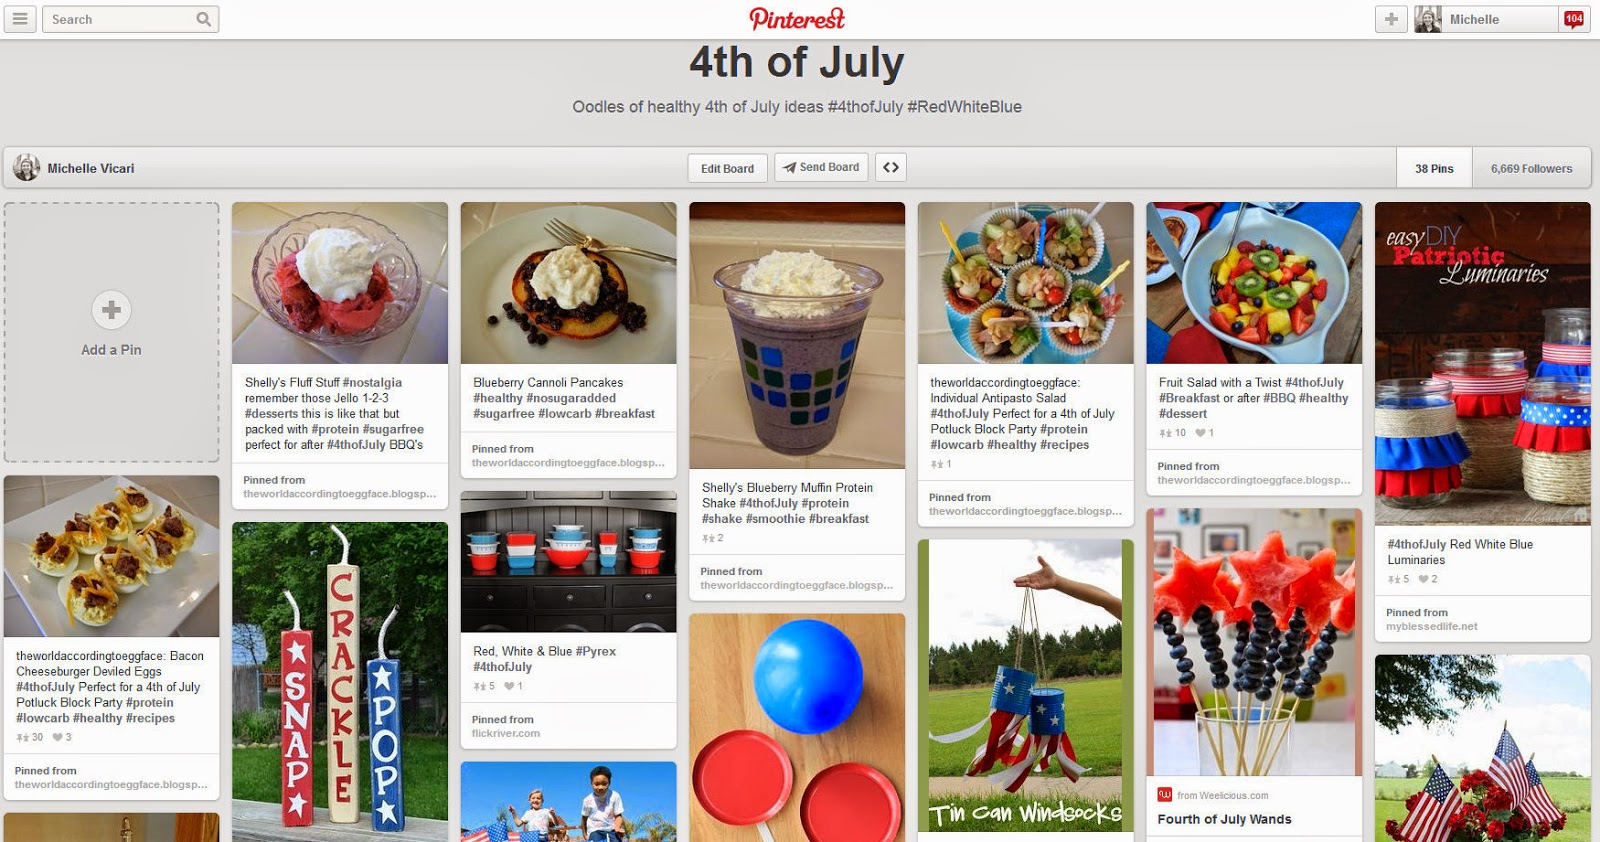 4th+of+July+Pinterest Weight Loss Recipes Eggface Healthy 4th of July Pinterest Page